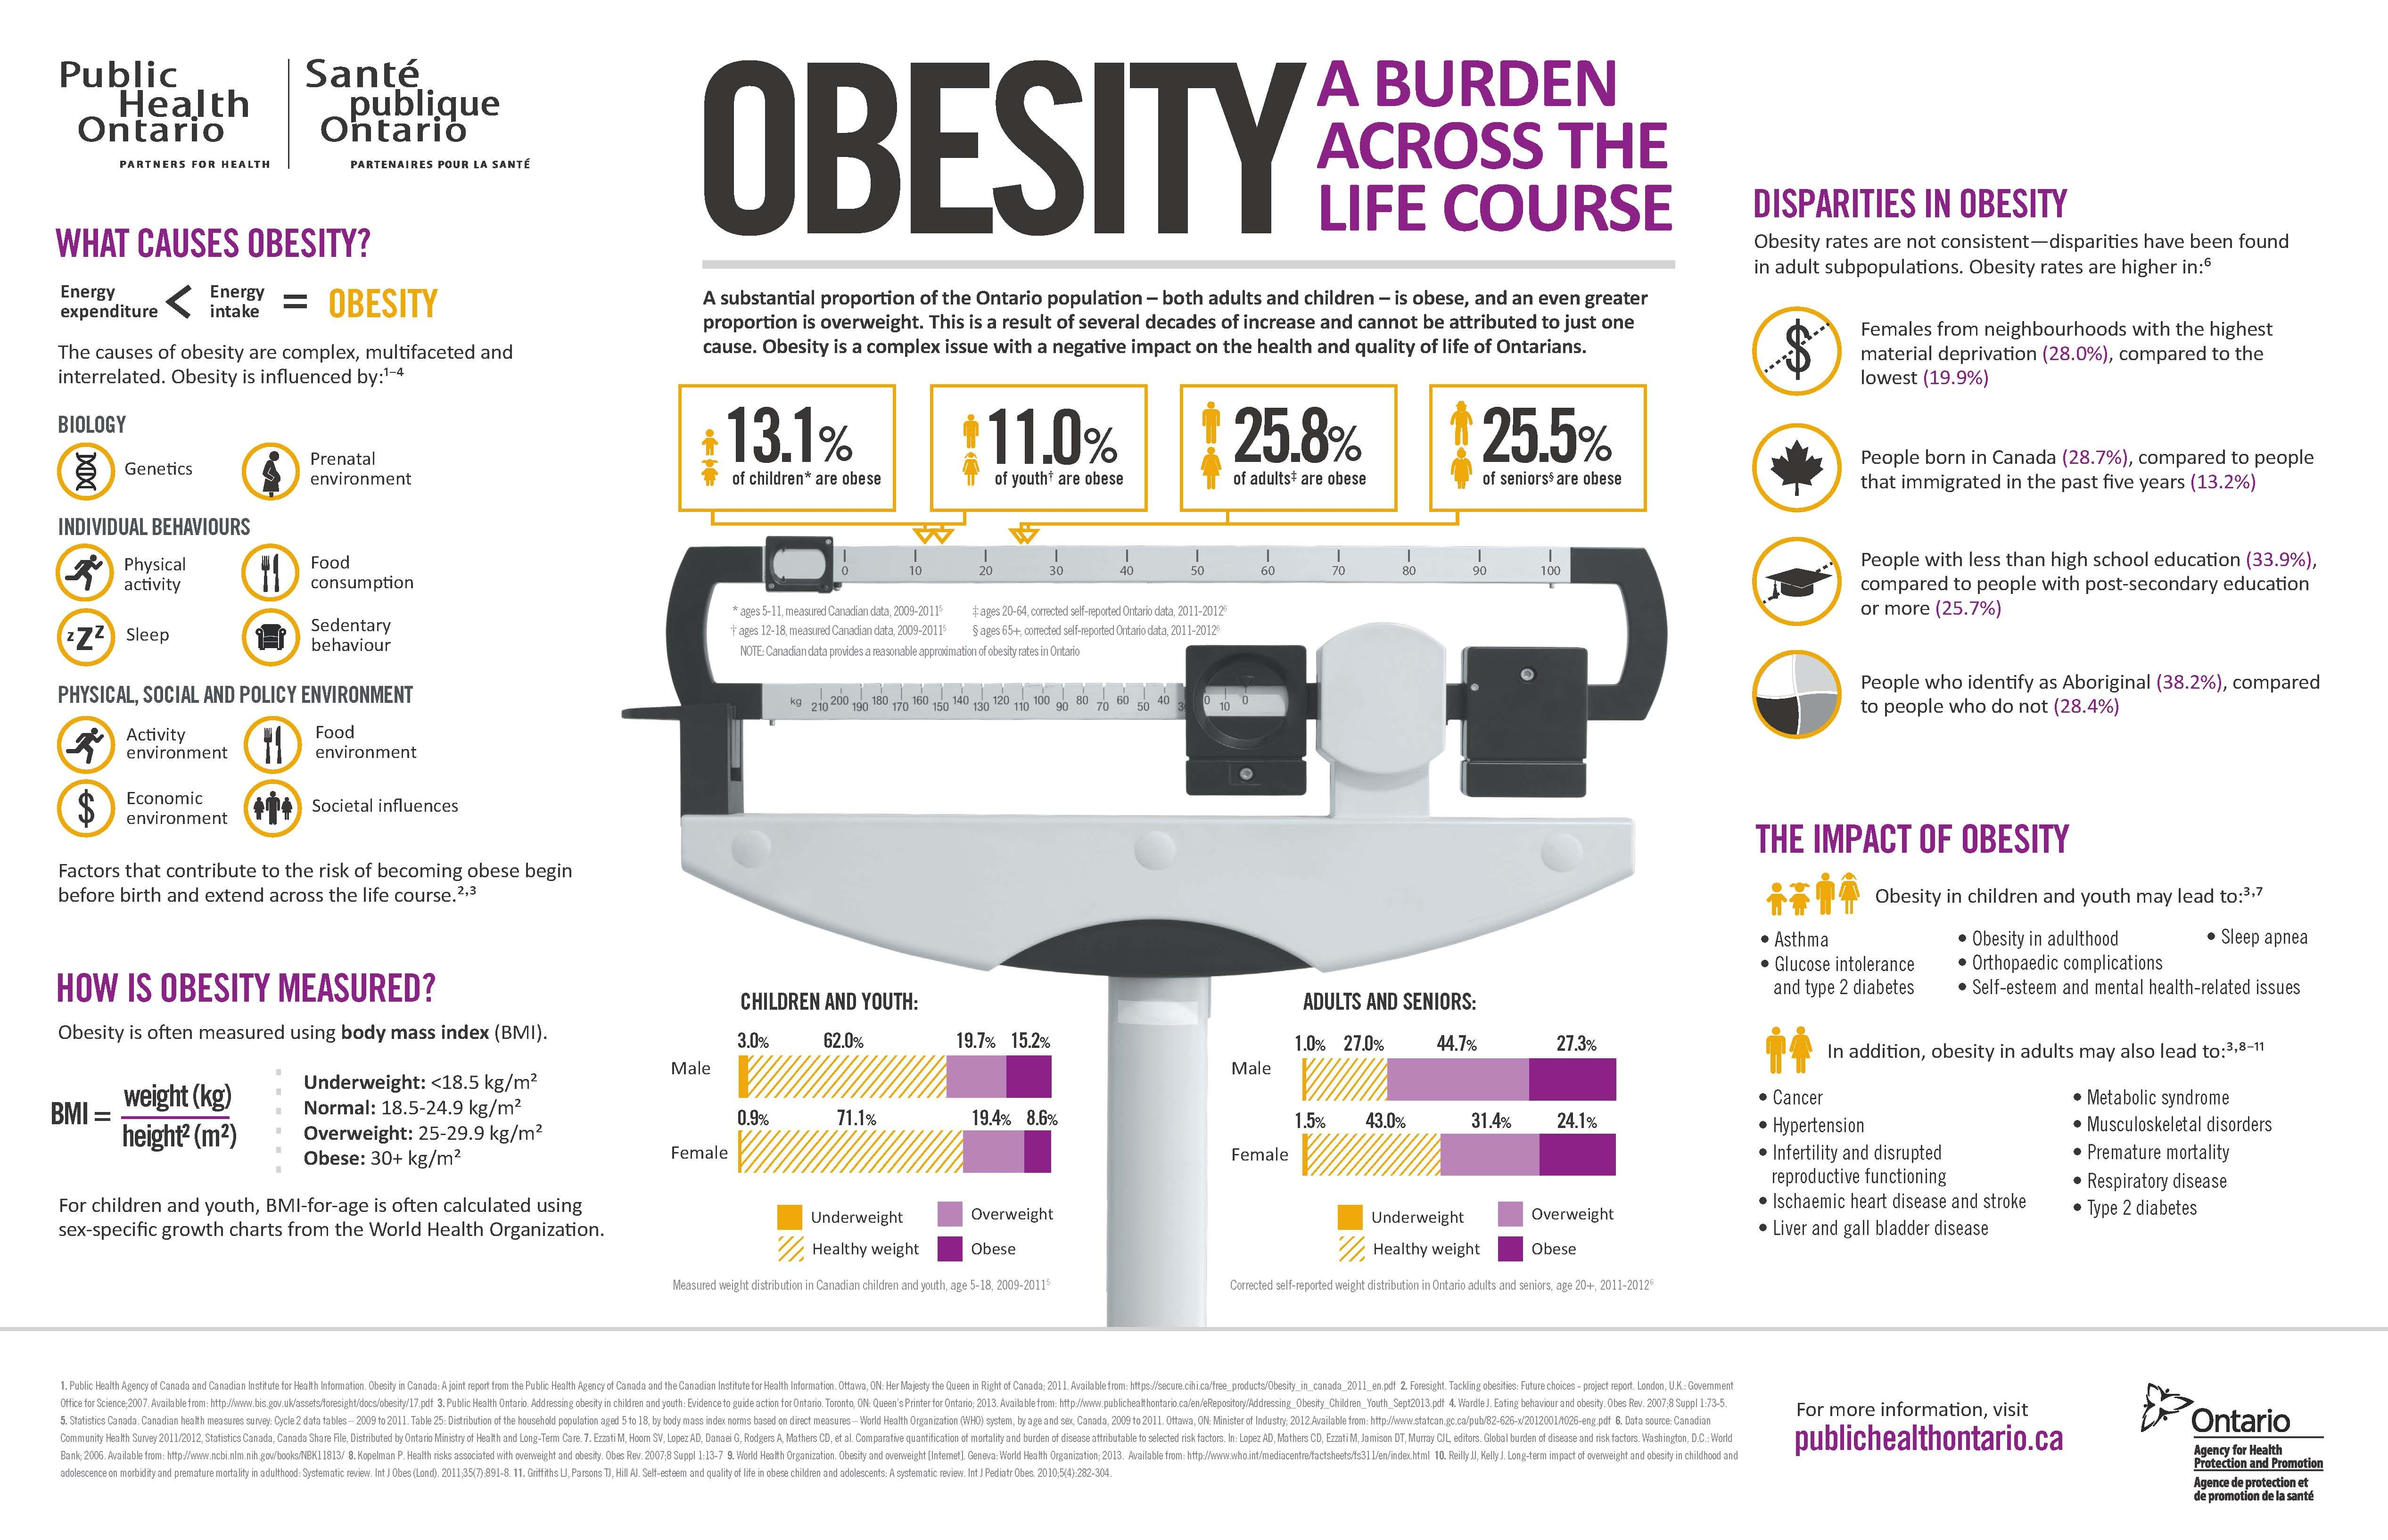 Infographic on obesity and how it negatively impacts the health and quality of life of Ontarians.  ​2014-04-16